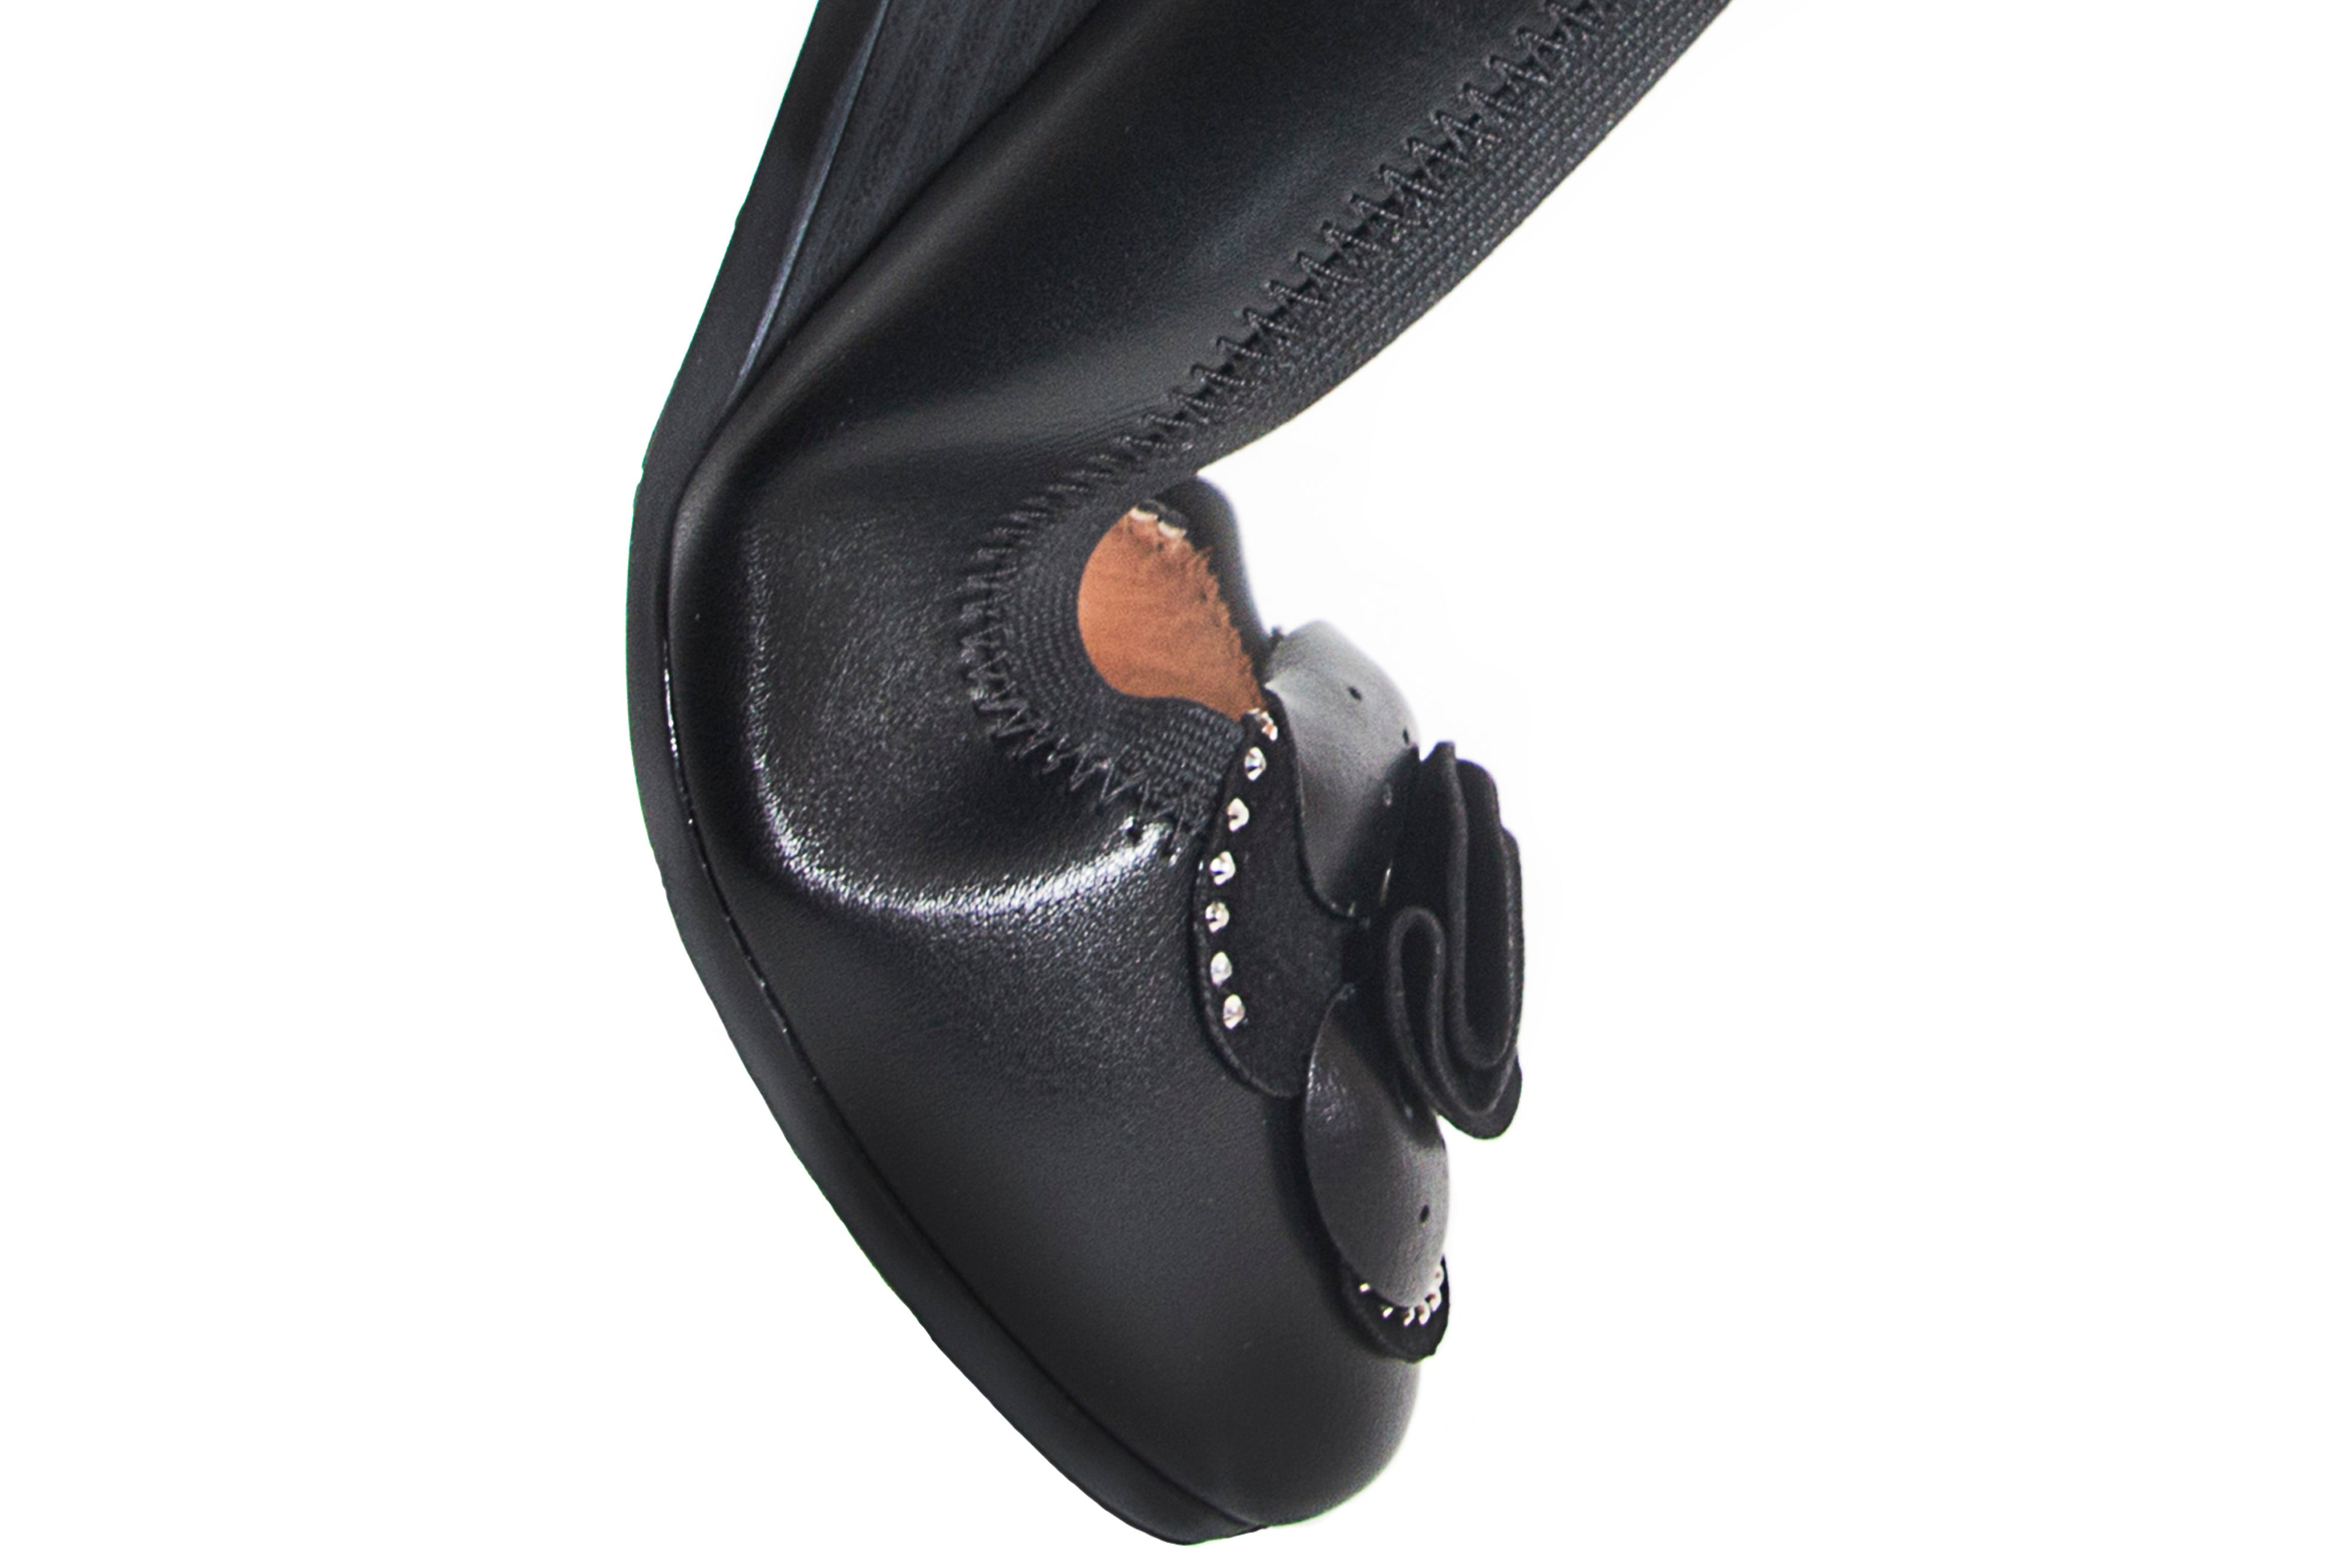 Soft and comfie leather Black color slip on wedge shoes with big sparkley flower center piece on the front